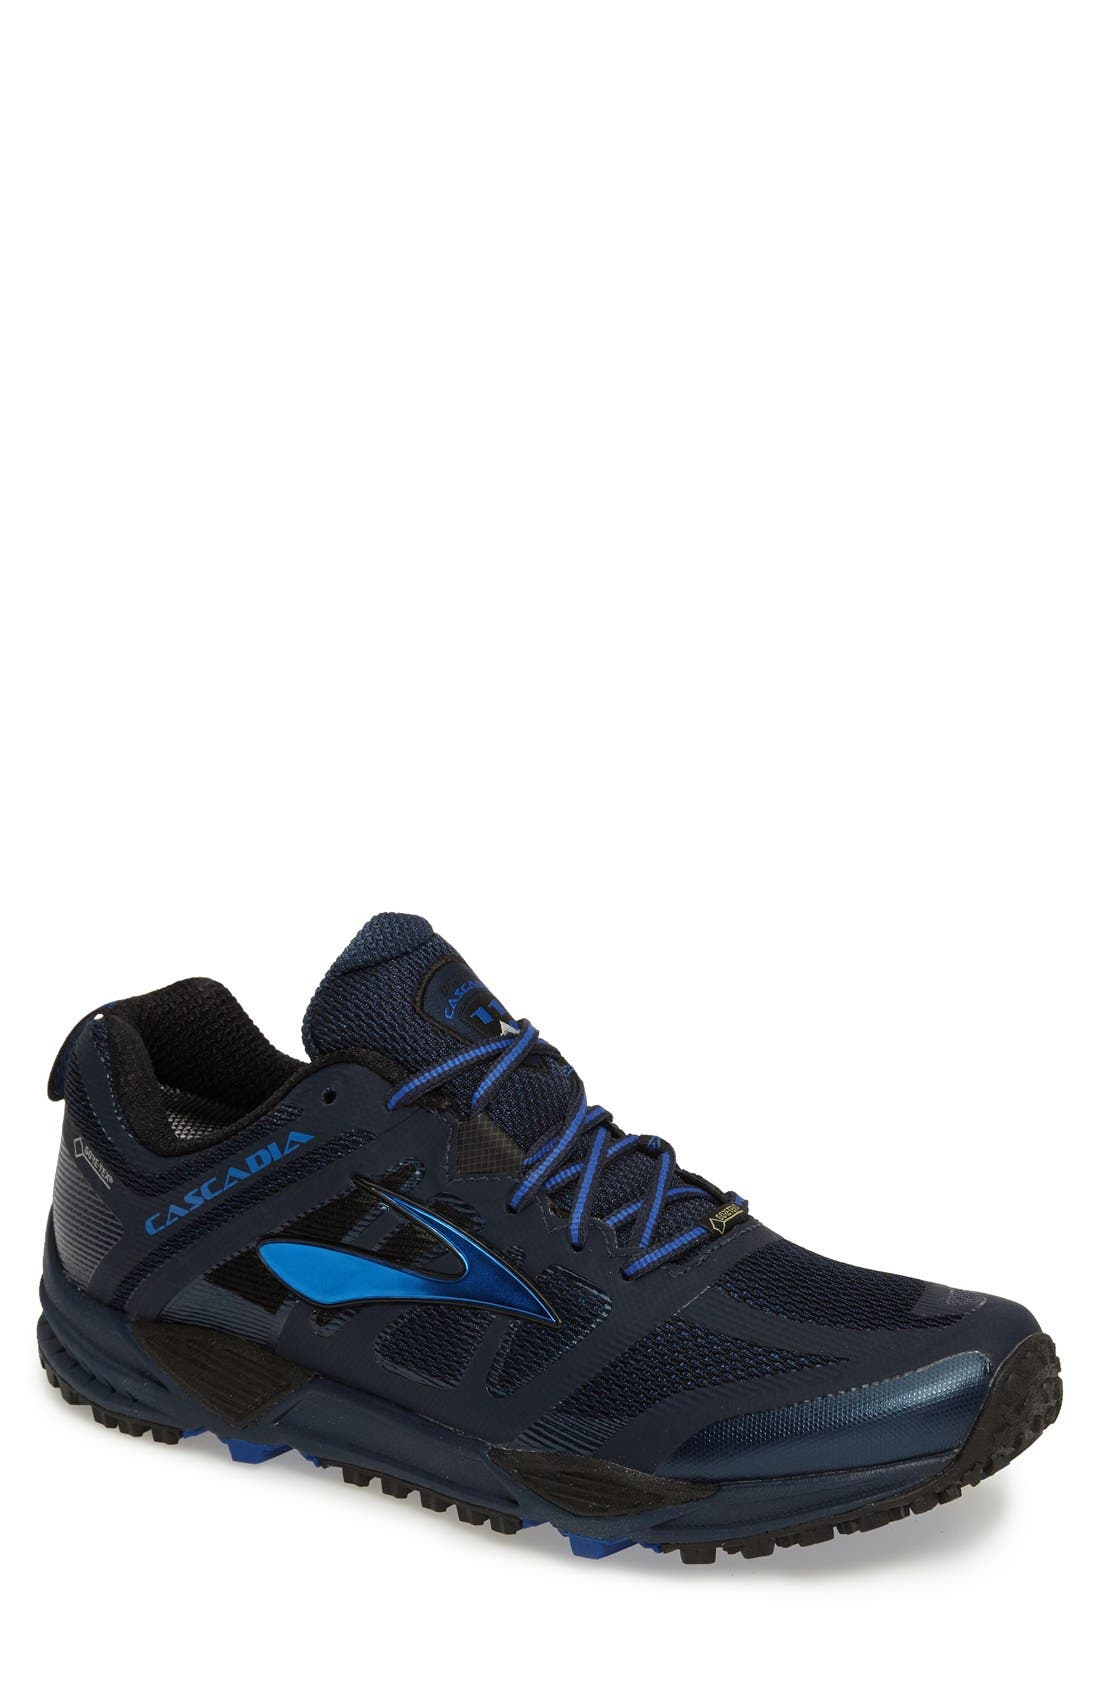 BROOKS Cascadia 11 GTX Trail Running Shoe